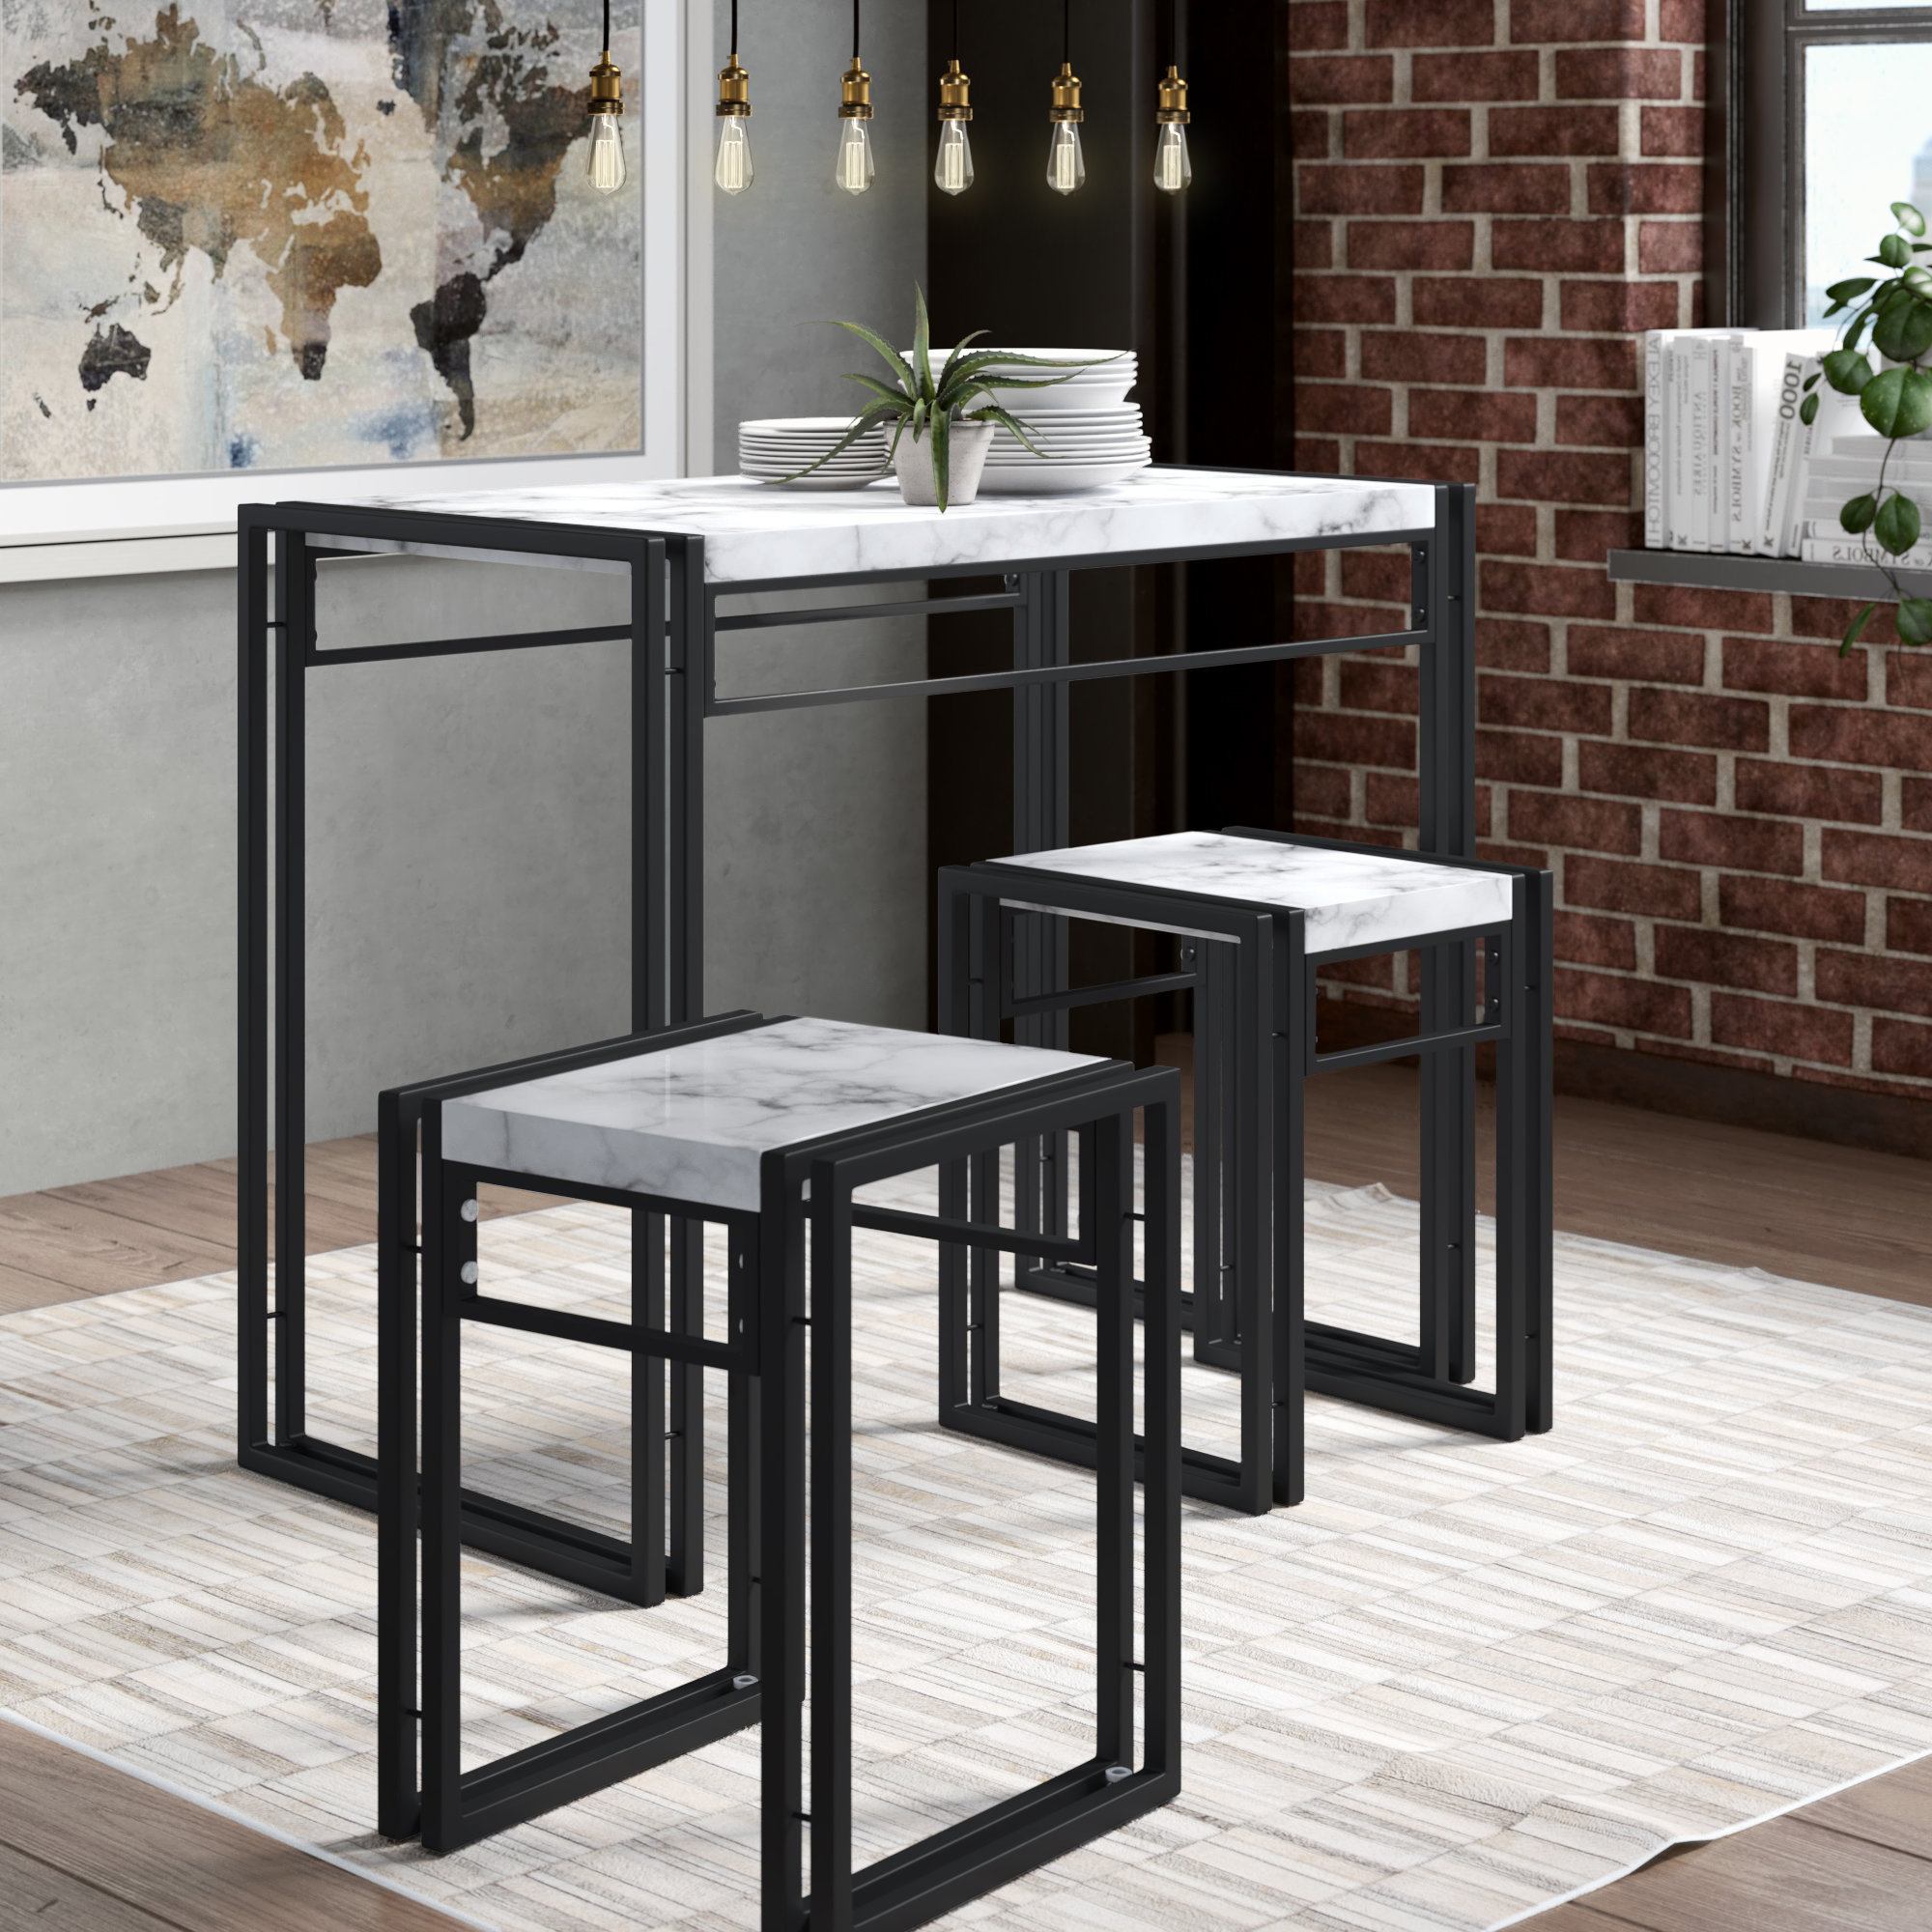 Fashionable Debby Small Space 3 Piece Dining Set Regarding Miskell 3 Piece Dining Sets (Gallery 7 of 20)